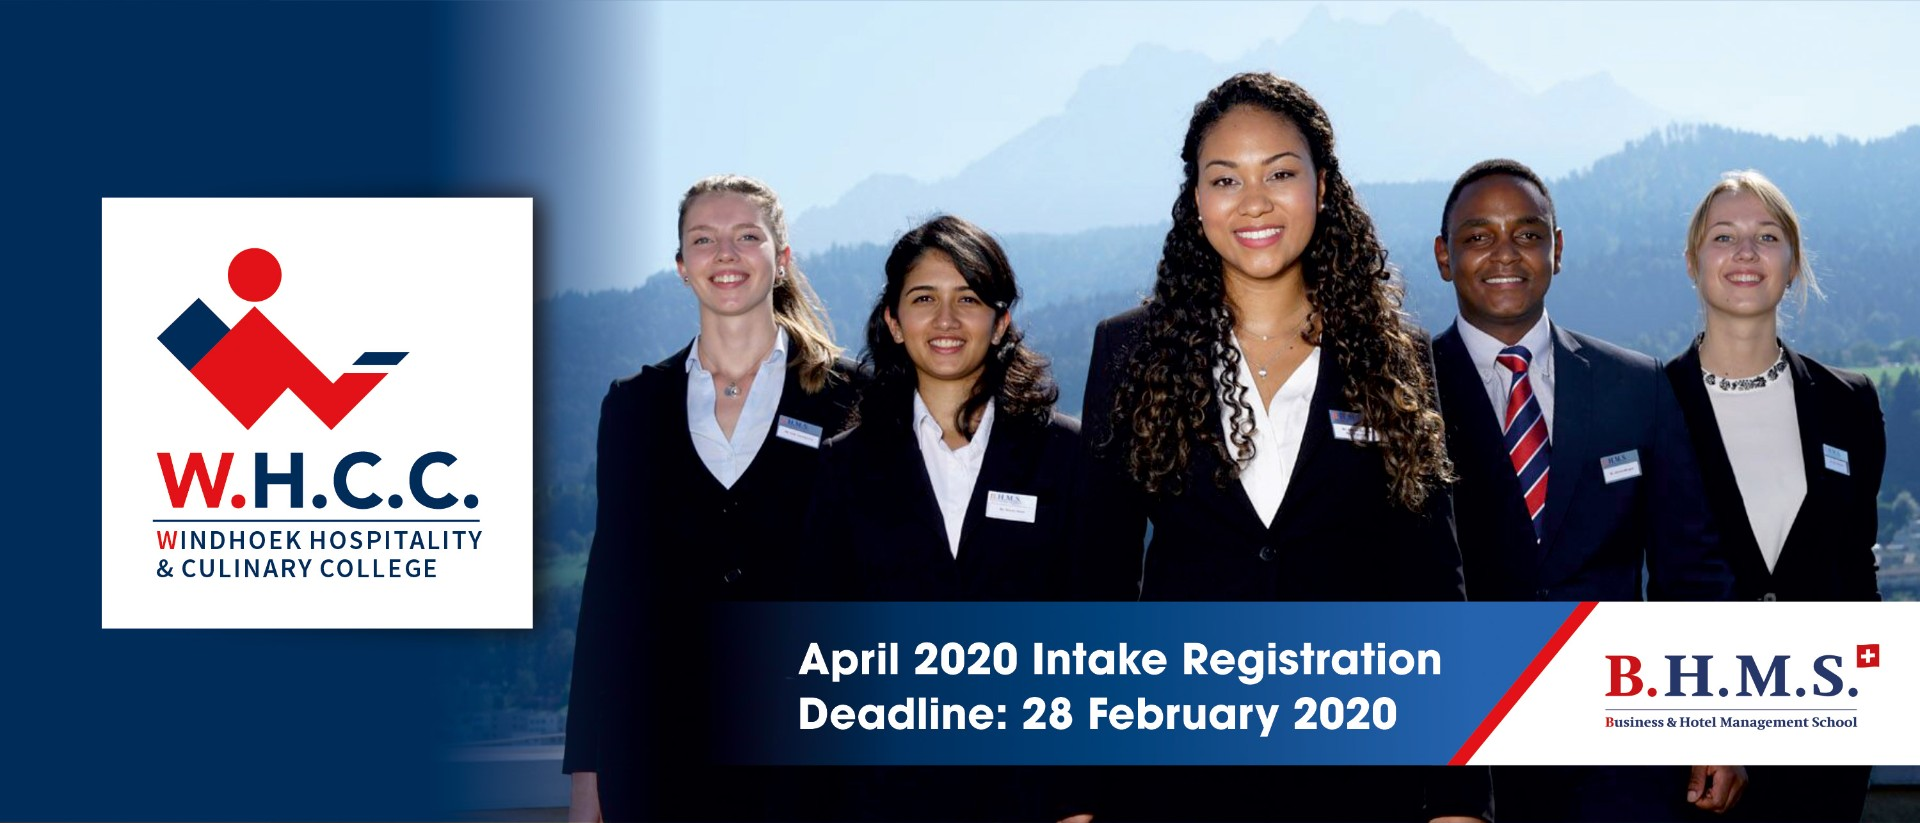 April 2020 Intake Registration